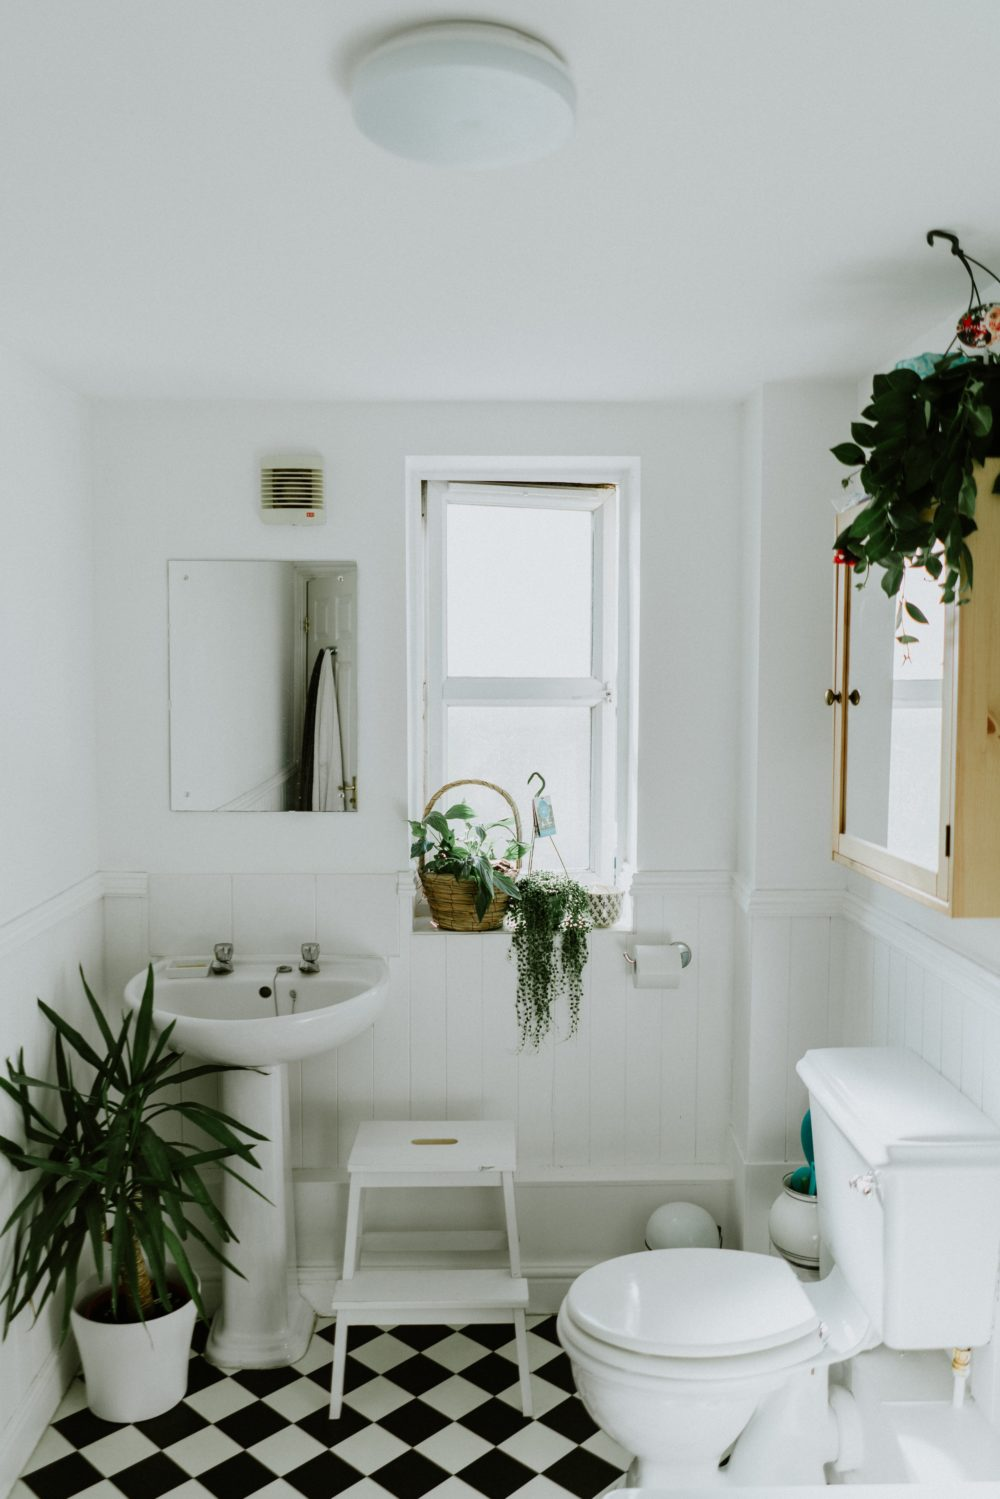 What to look for when choosing bathroom suites 2